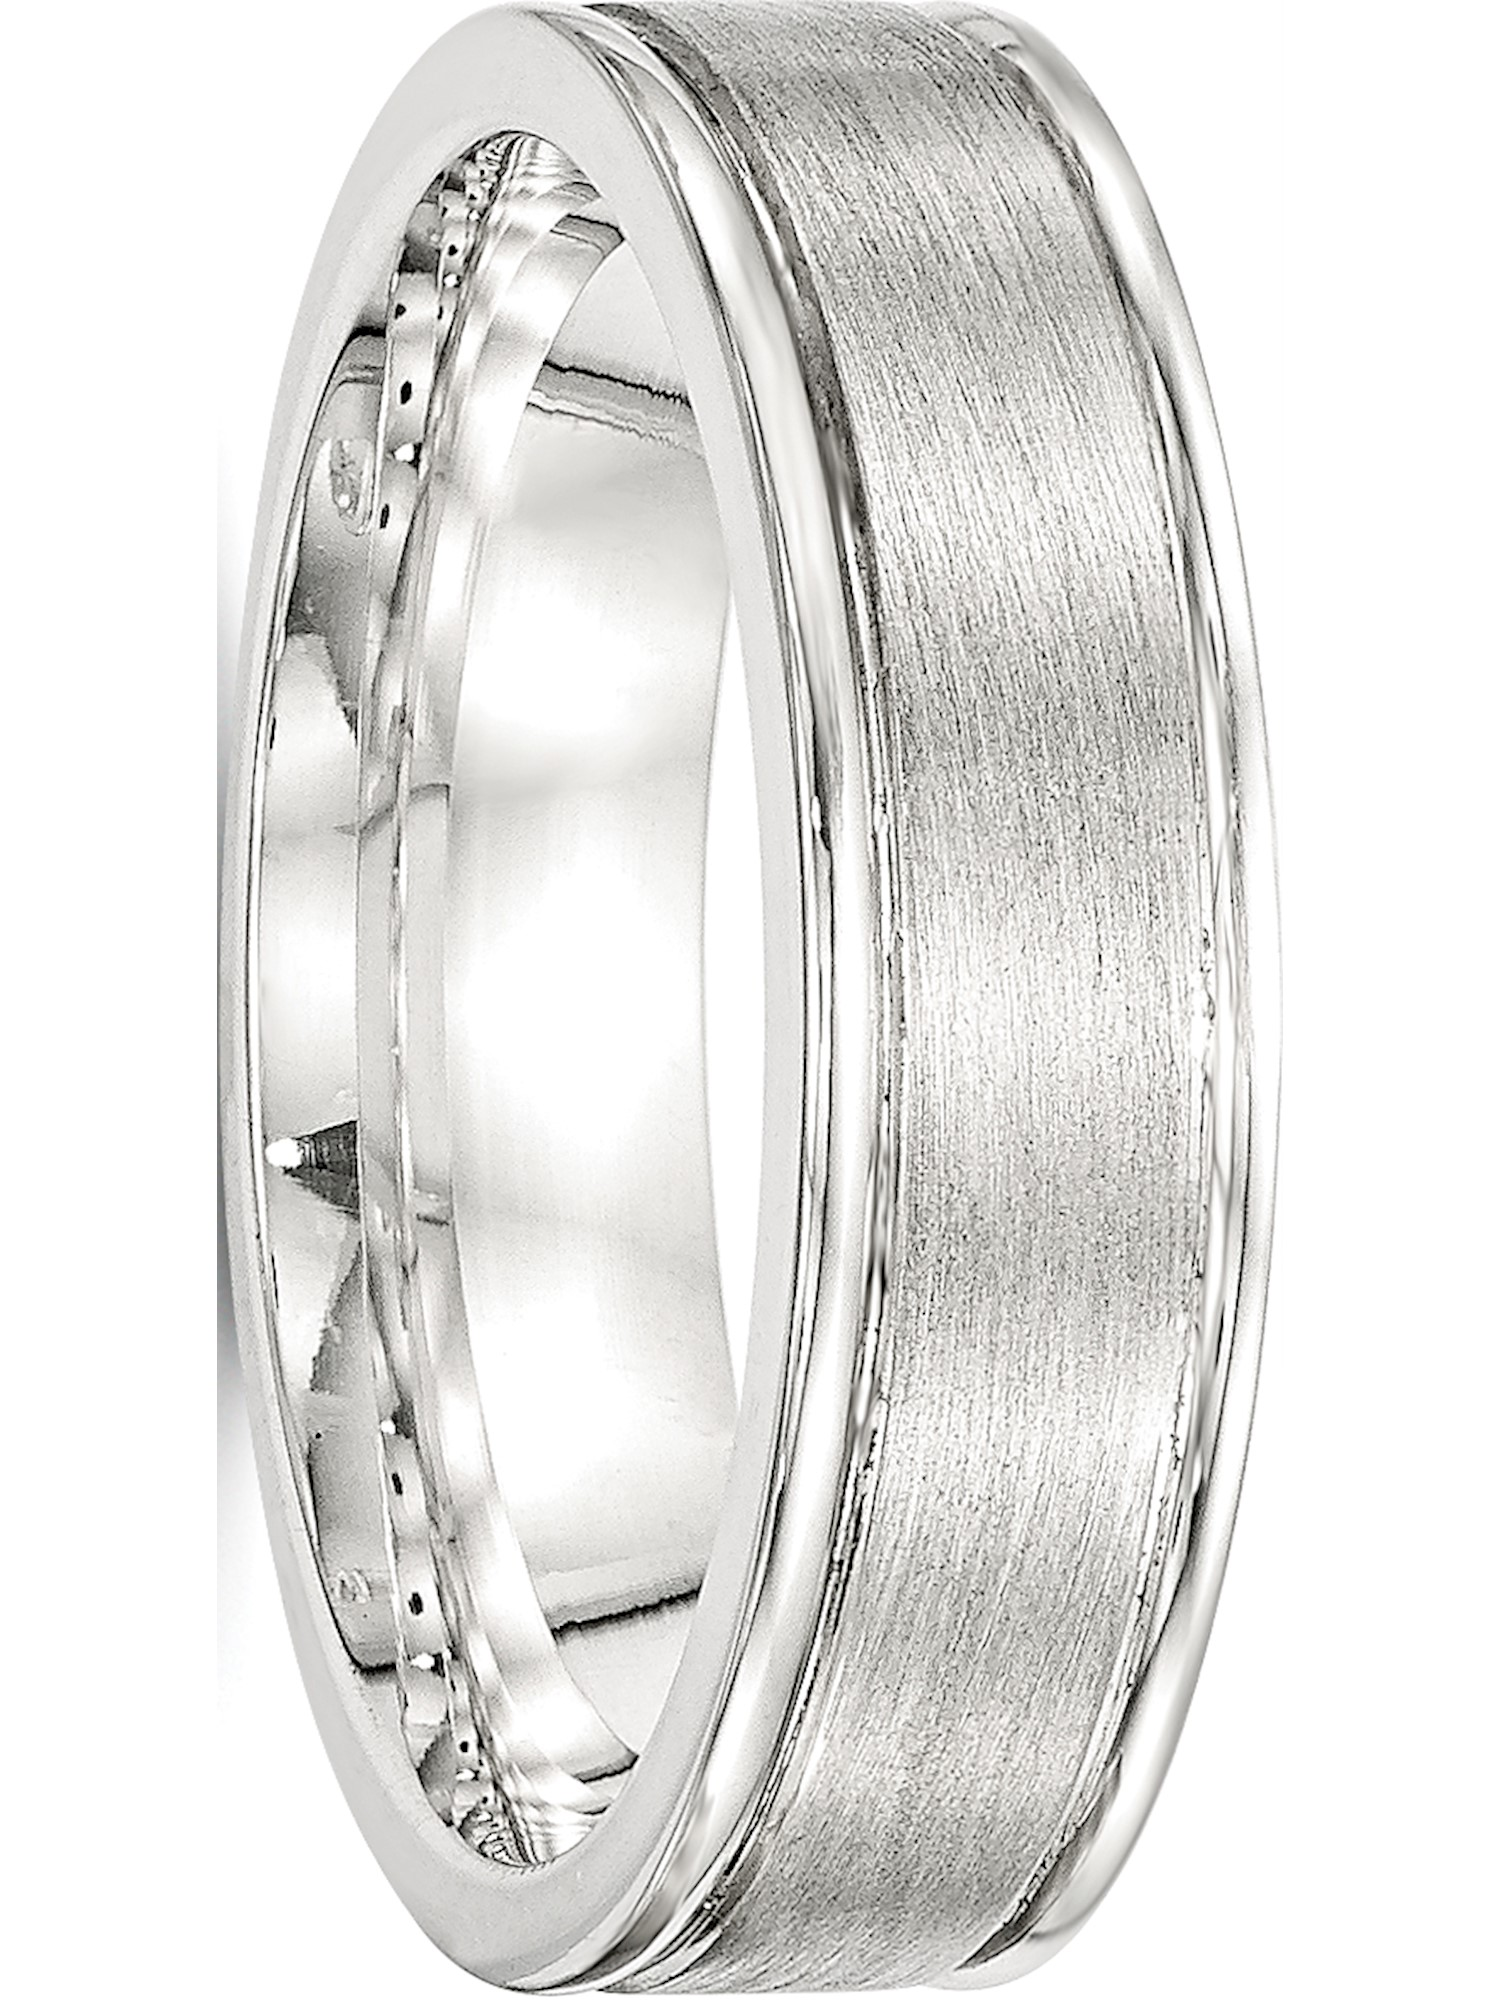 Full /& Half Sizes 925 Sterling Silver 6mm Polished Grooved Fancy Flat Wedding Ring Band Available in Sizes 7-13